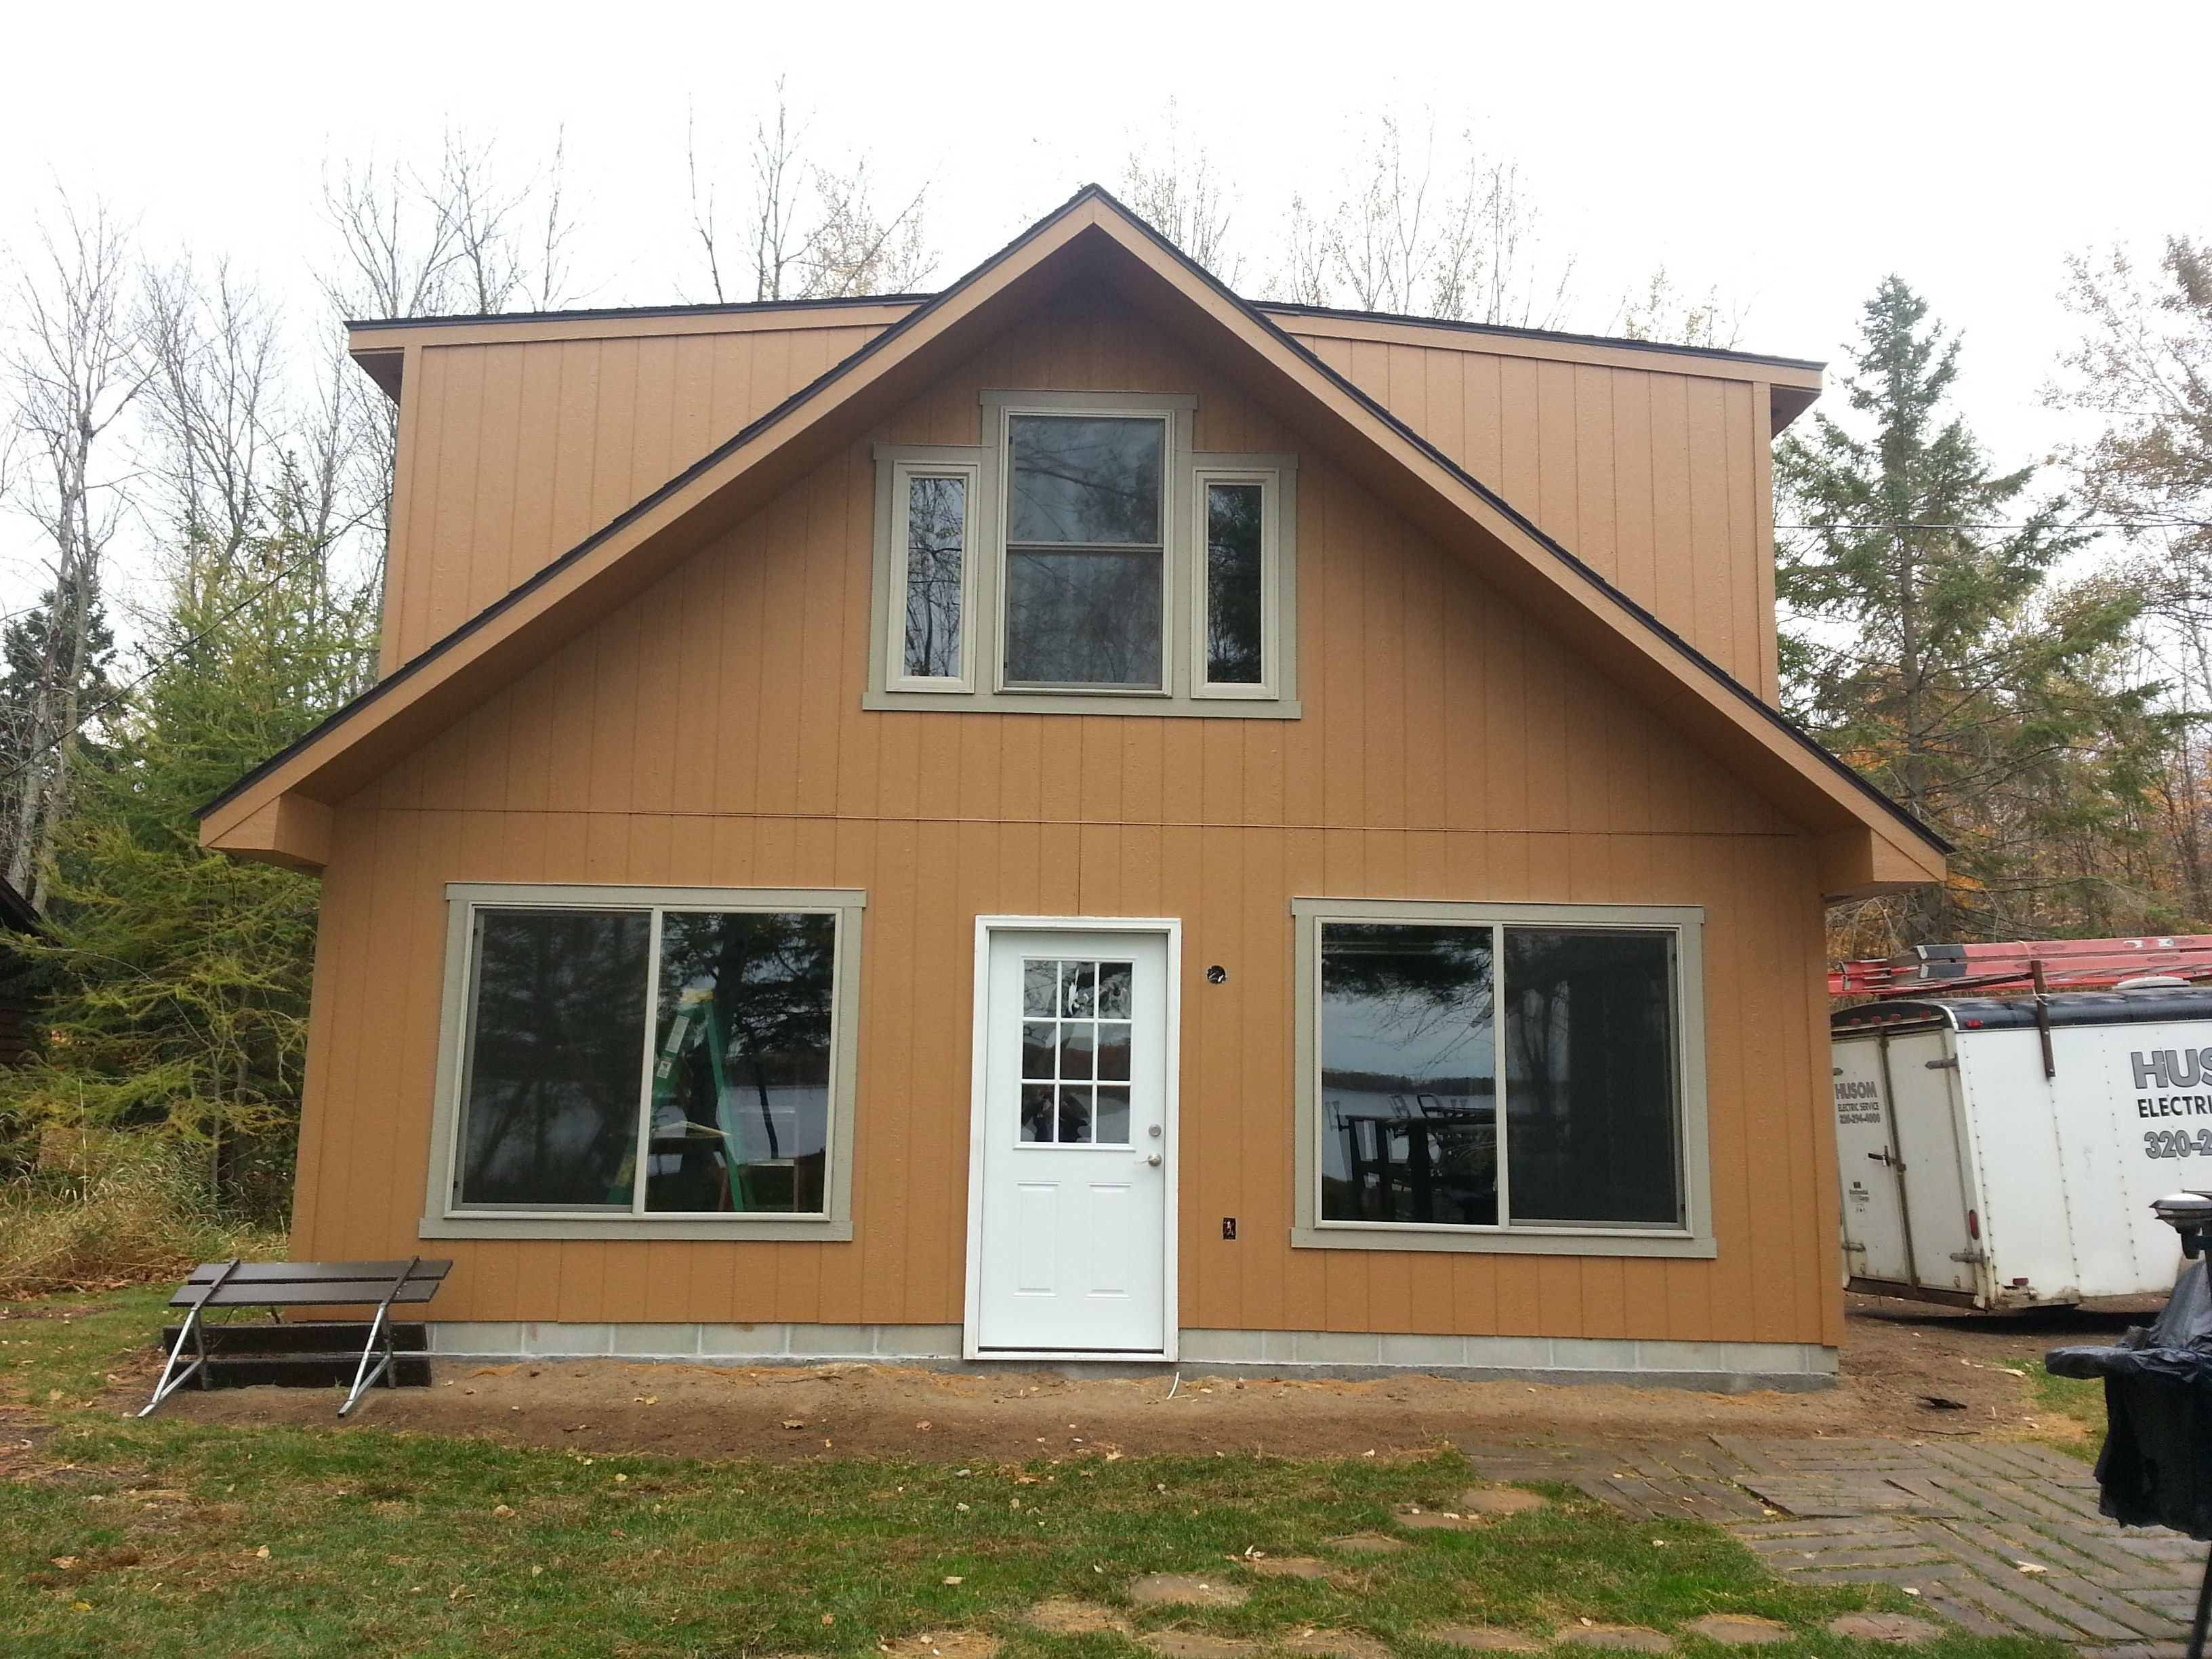 Did You Know Tuff Shed At Home Depot Builds Garages Shed Homes